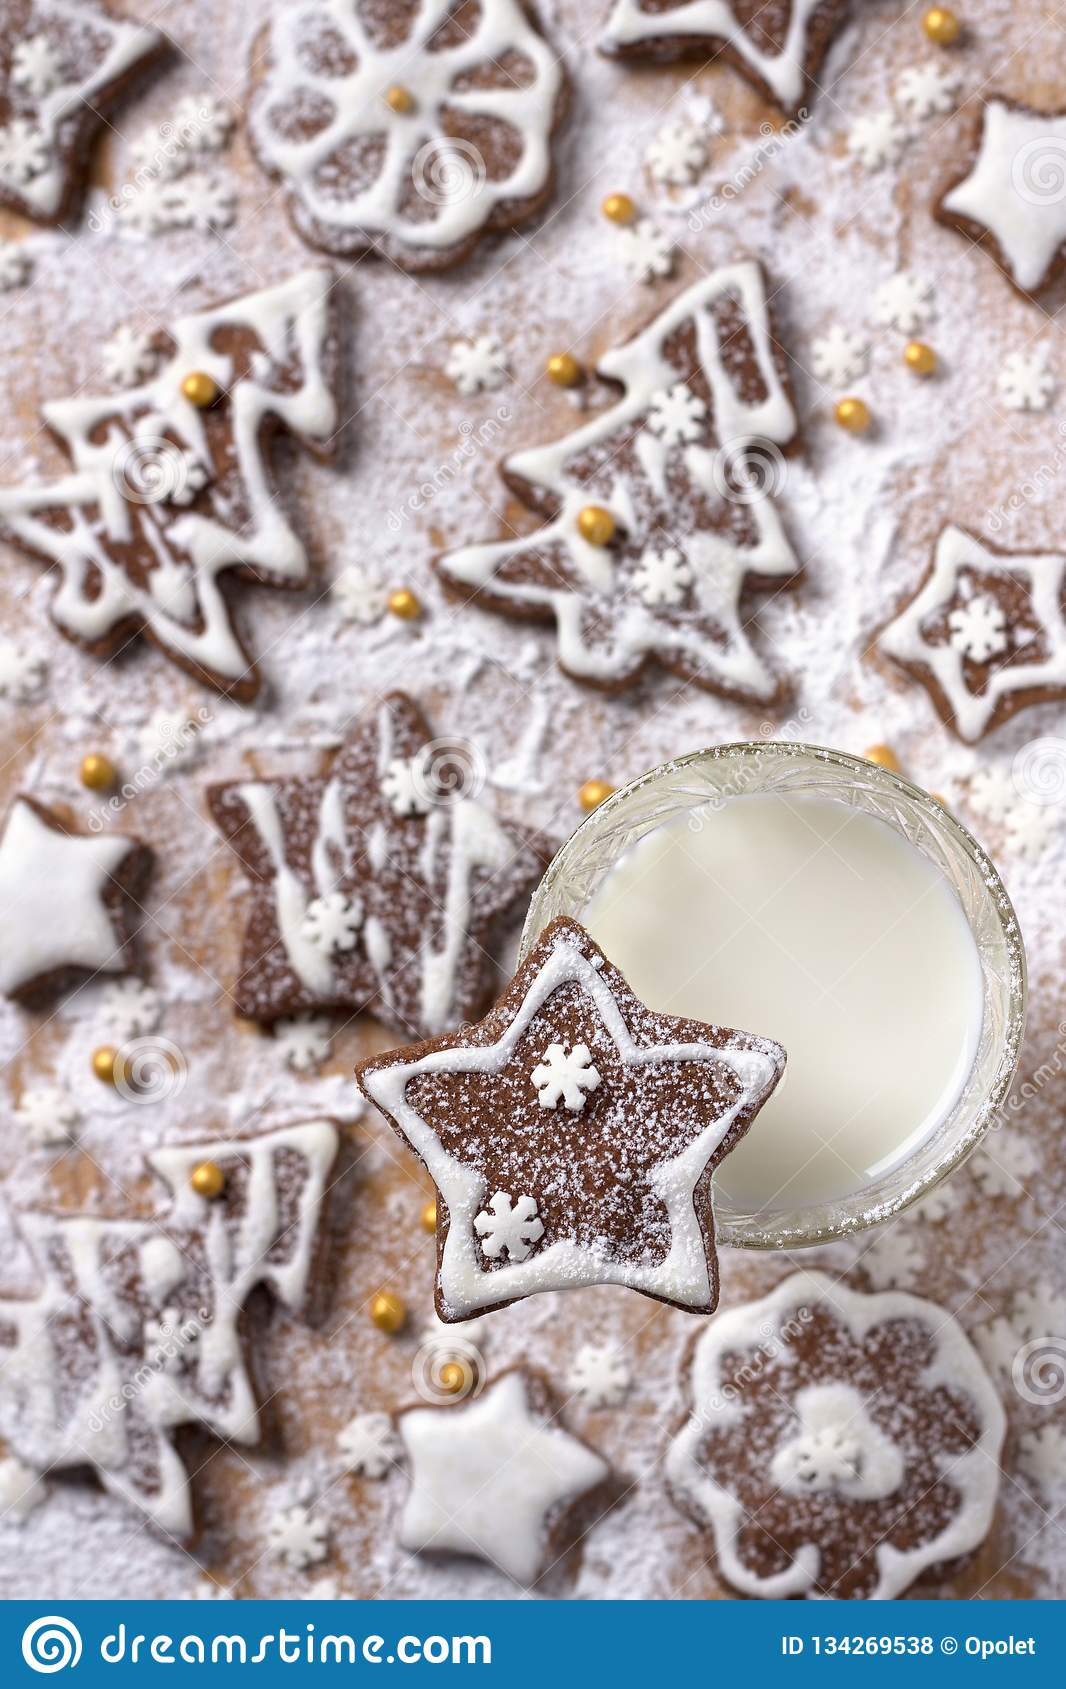 Christmas Homemade Chocolate Cookies Decorated With Icing And